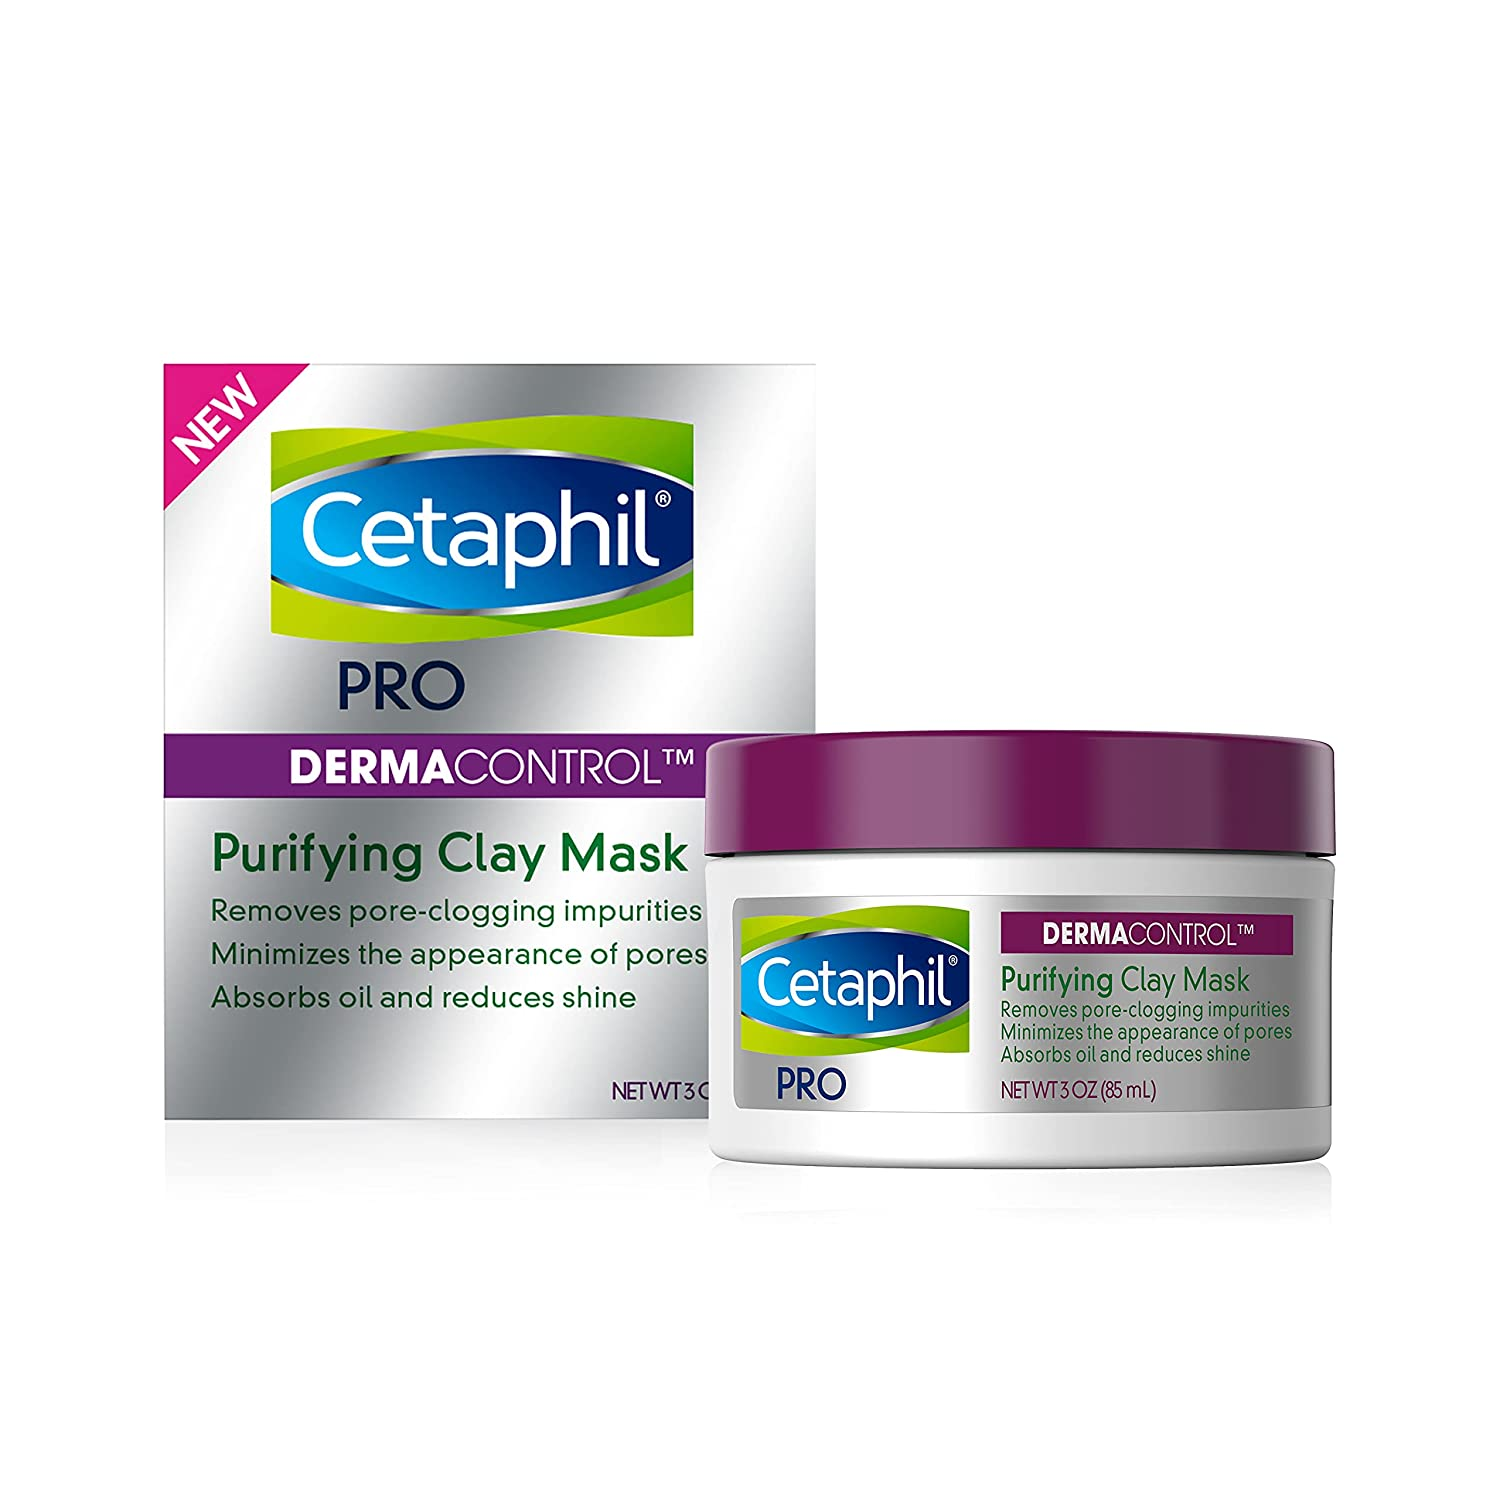 Clay Mask by Cetaphil Pro, Dermacontrol Purifying Clay Face Mask with Bentonite Clay for Blackheads and Pores, Designed for Oily, Sensitive Skin, 3 oz: Beauty